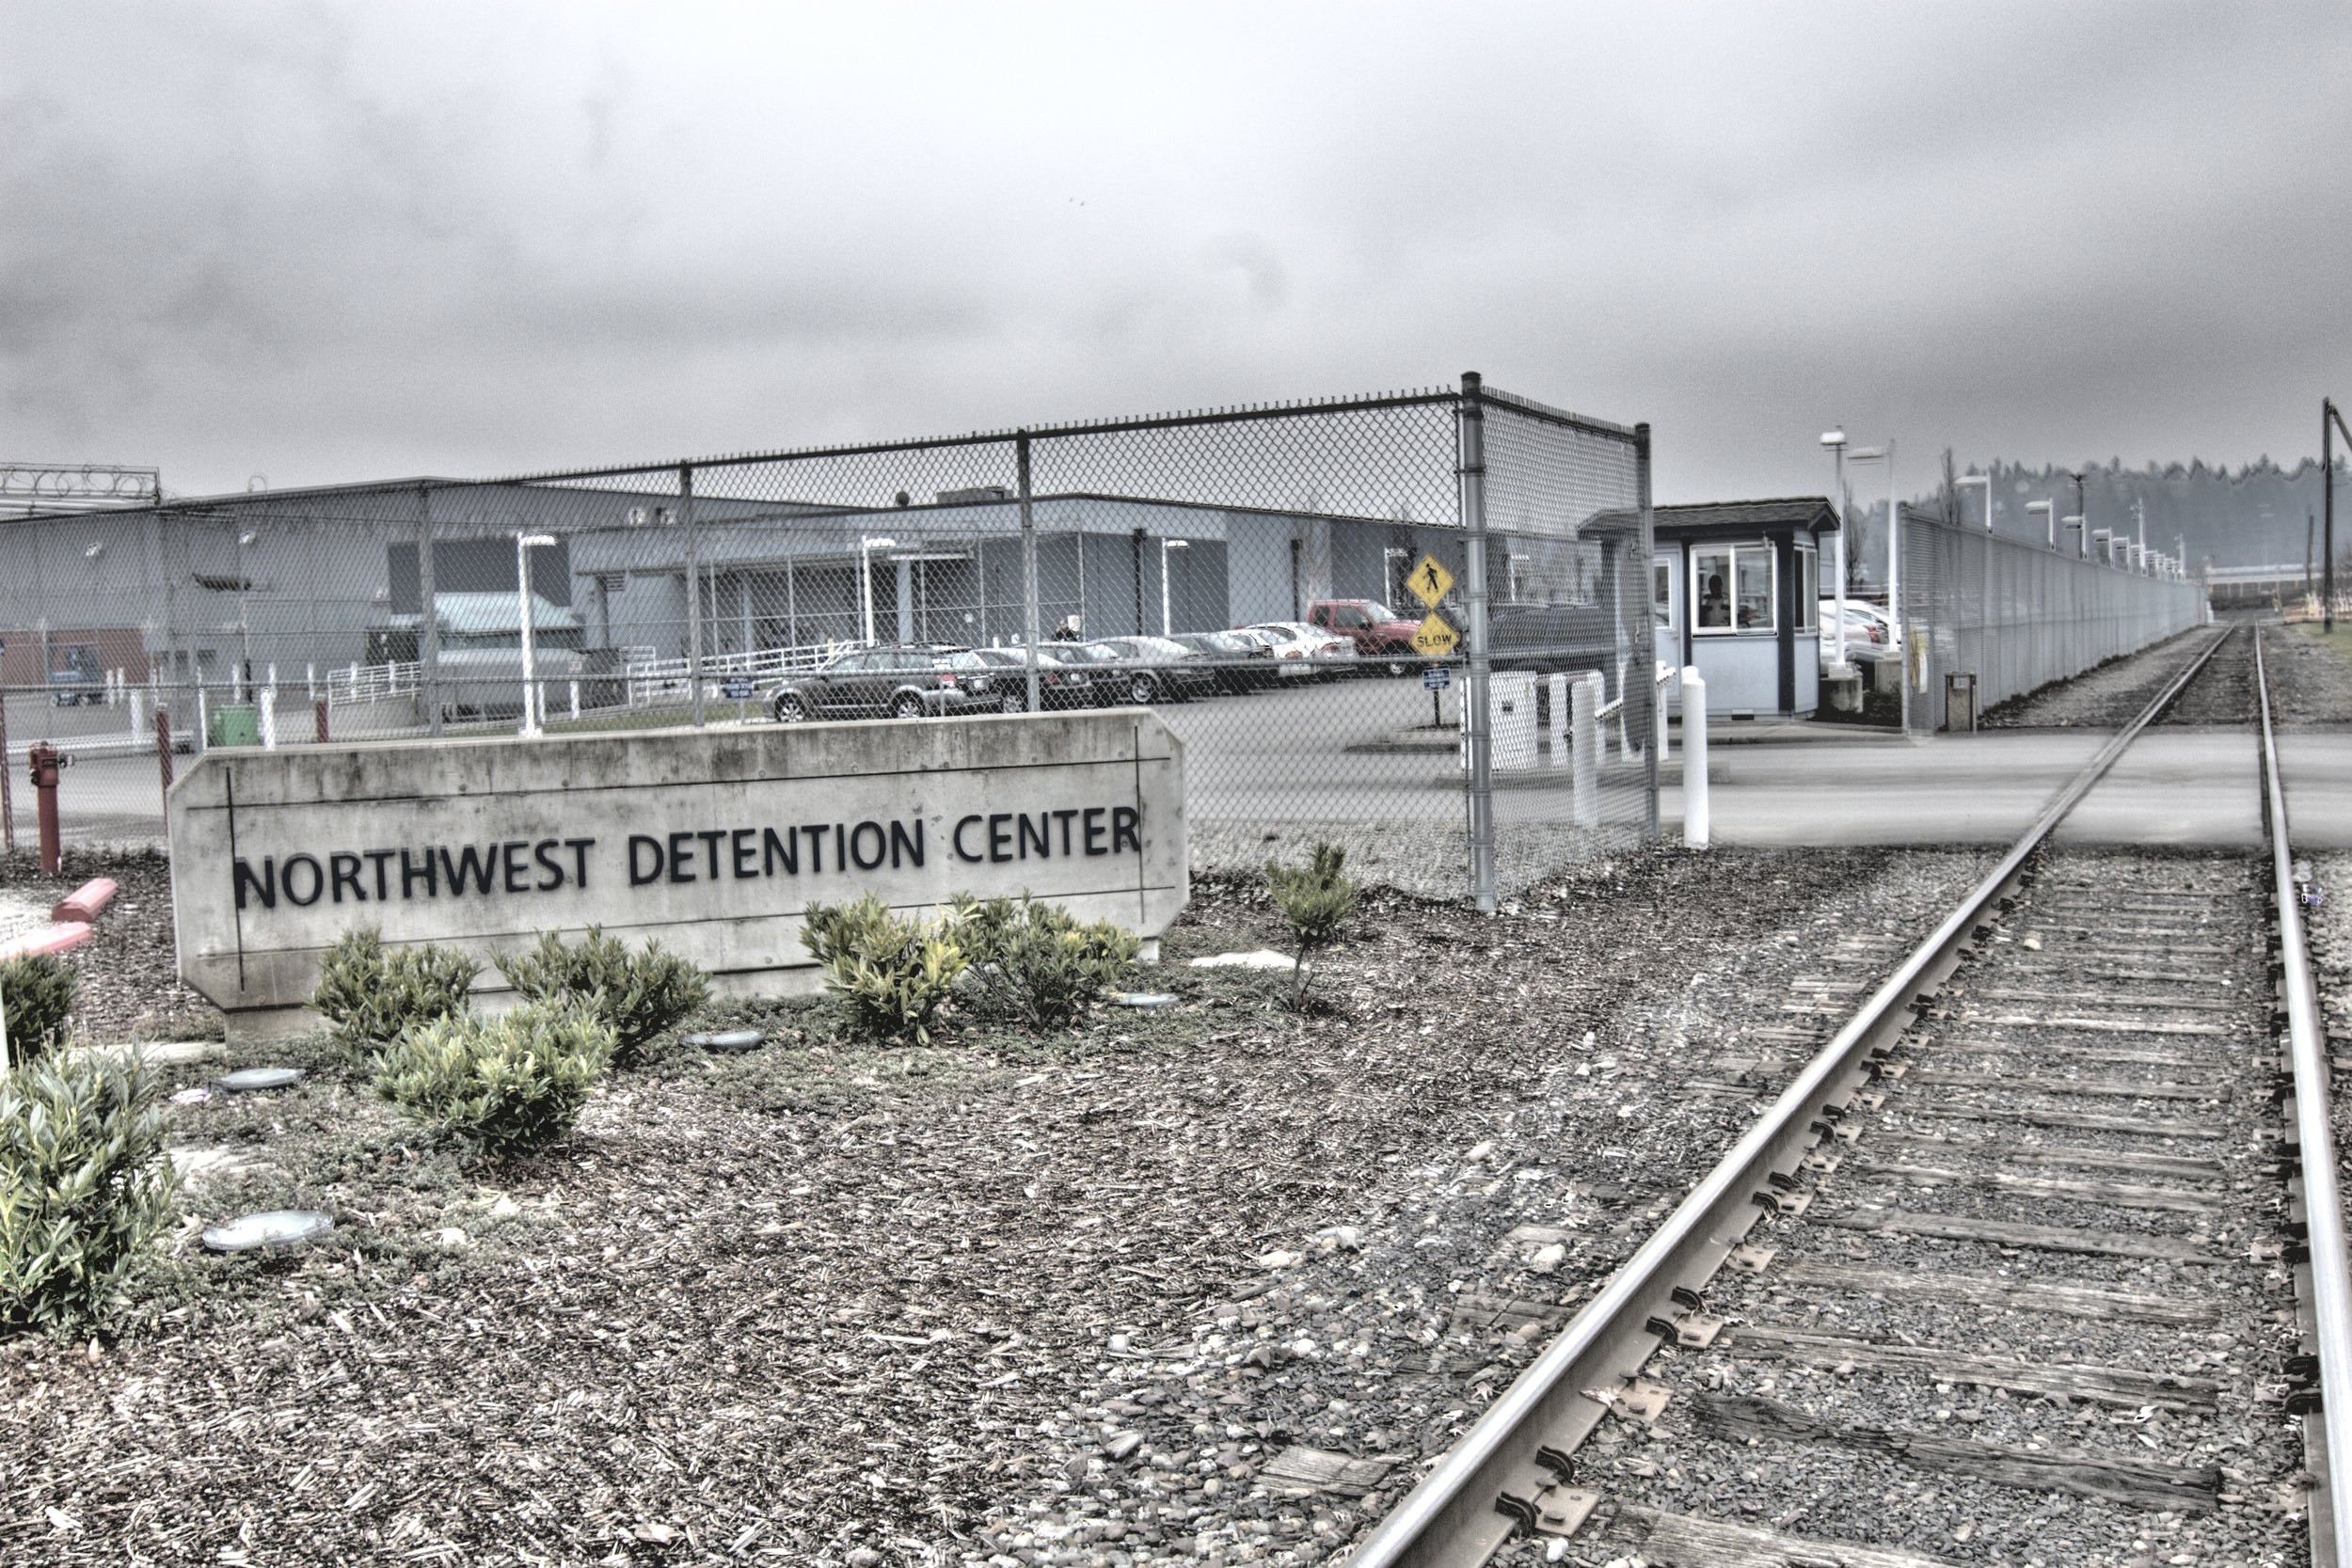 The Northwest Detention Center in Tacoma, Washington, where Mergensana Amar spent his final days.   Seattle Globalist/Flickr  (CC BY-SA 2.0)